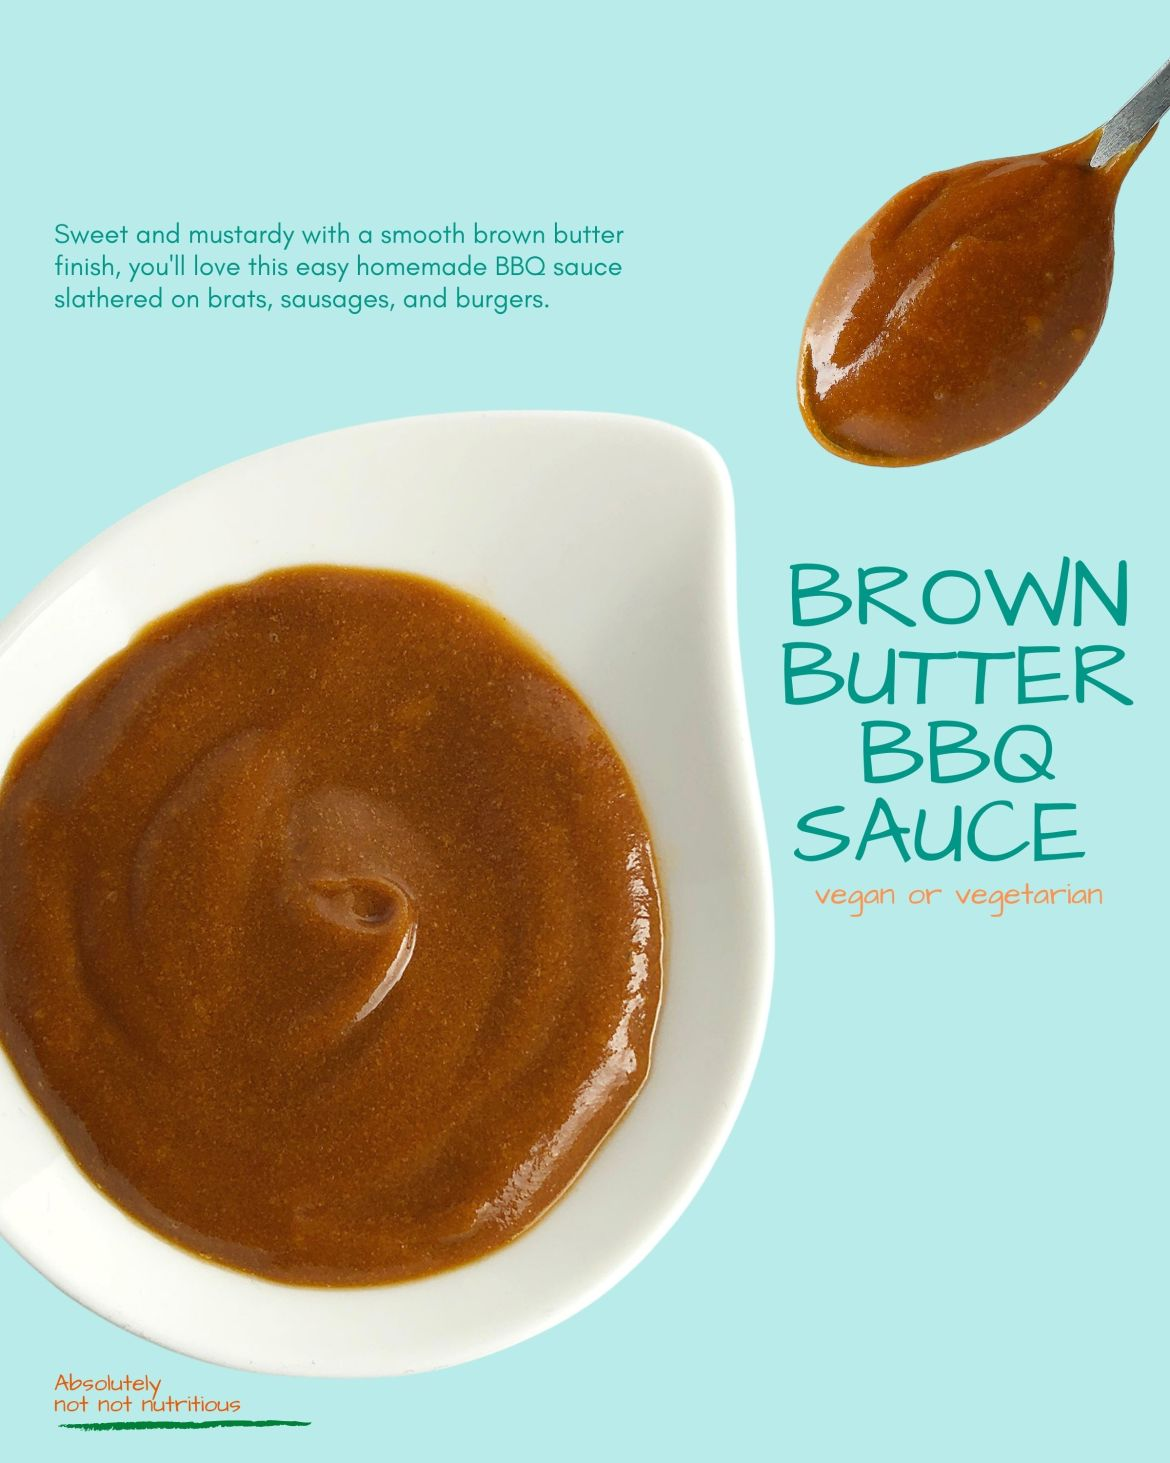 Infographic for Brown Butter Barbecue Sauce. Image shows a dish with brown butter barbecue sauce and a spoon heaped with the sauce. Text reads: Brown Butter BBQ Sauce. Vegan or Vegetarian. Sweet and mustardy with a smooth brown butter finish, you'll love this easy homemade BBQ sauce slathered on brats, sausages, and burgers. Small text in bottom left corner of graphic reads: Absolutely not not nutritious